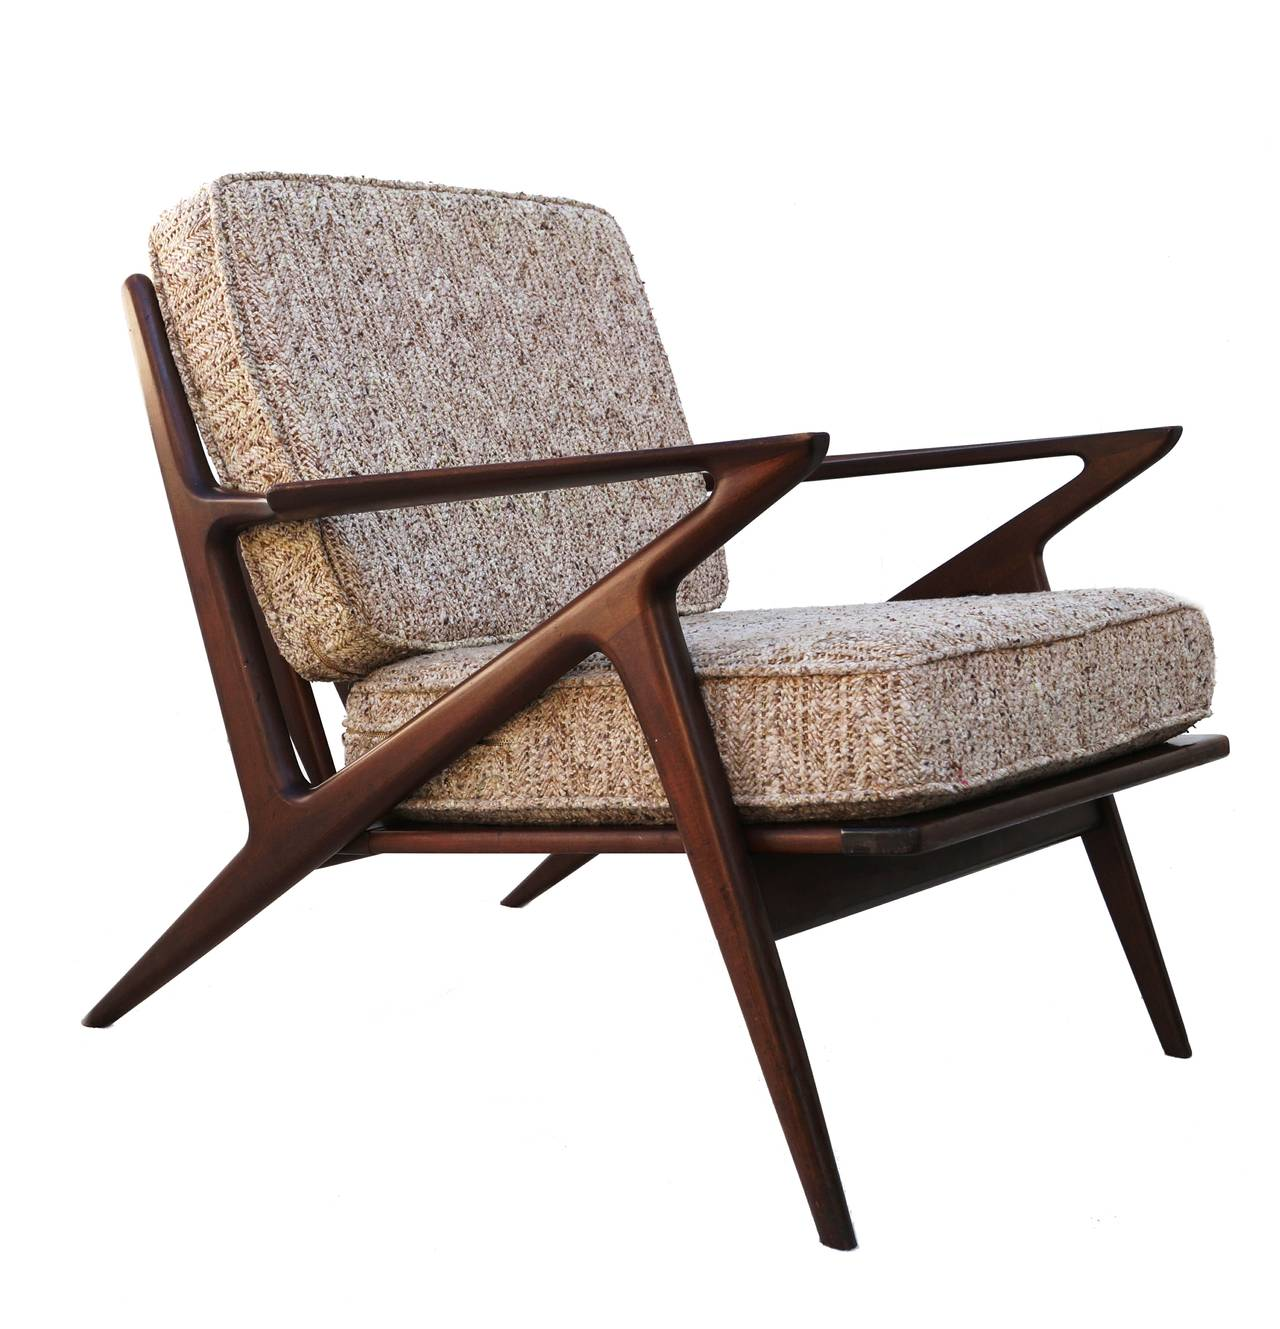 Pair of poul jensen z chairs selig at 1stdibs for Poul jensen z chair